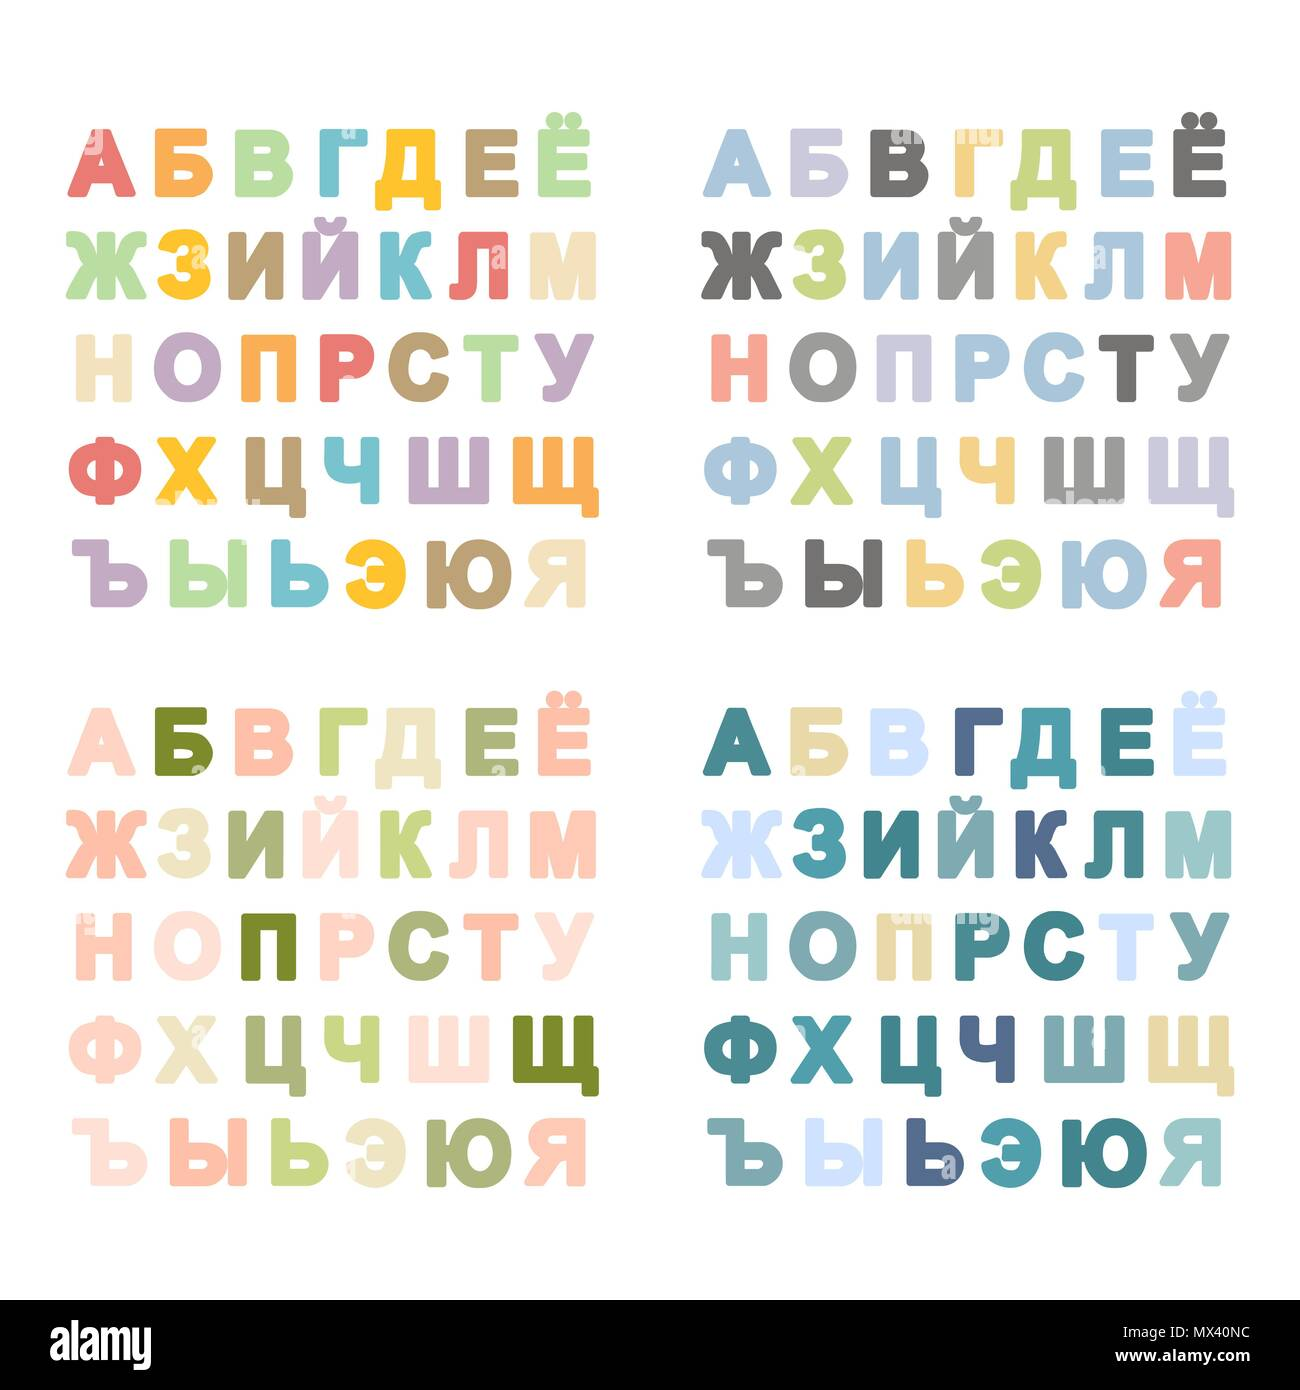 Russian alphabet set isolated on a white background - Stock Image